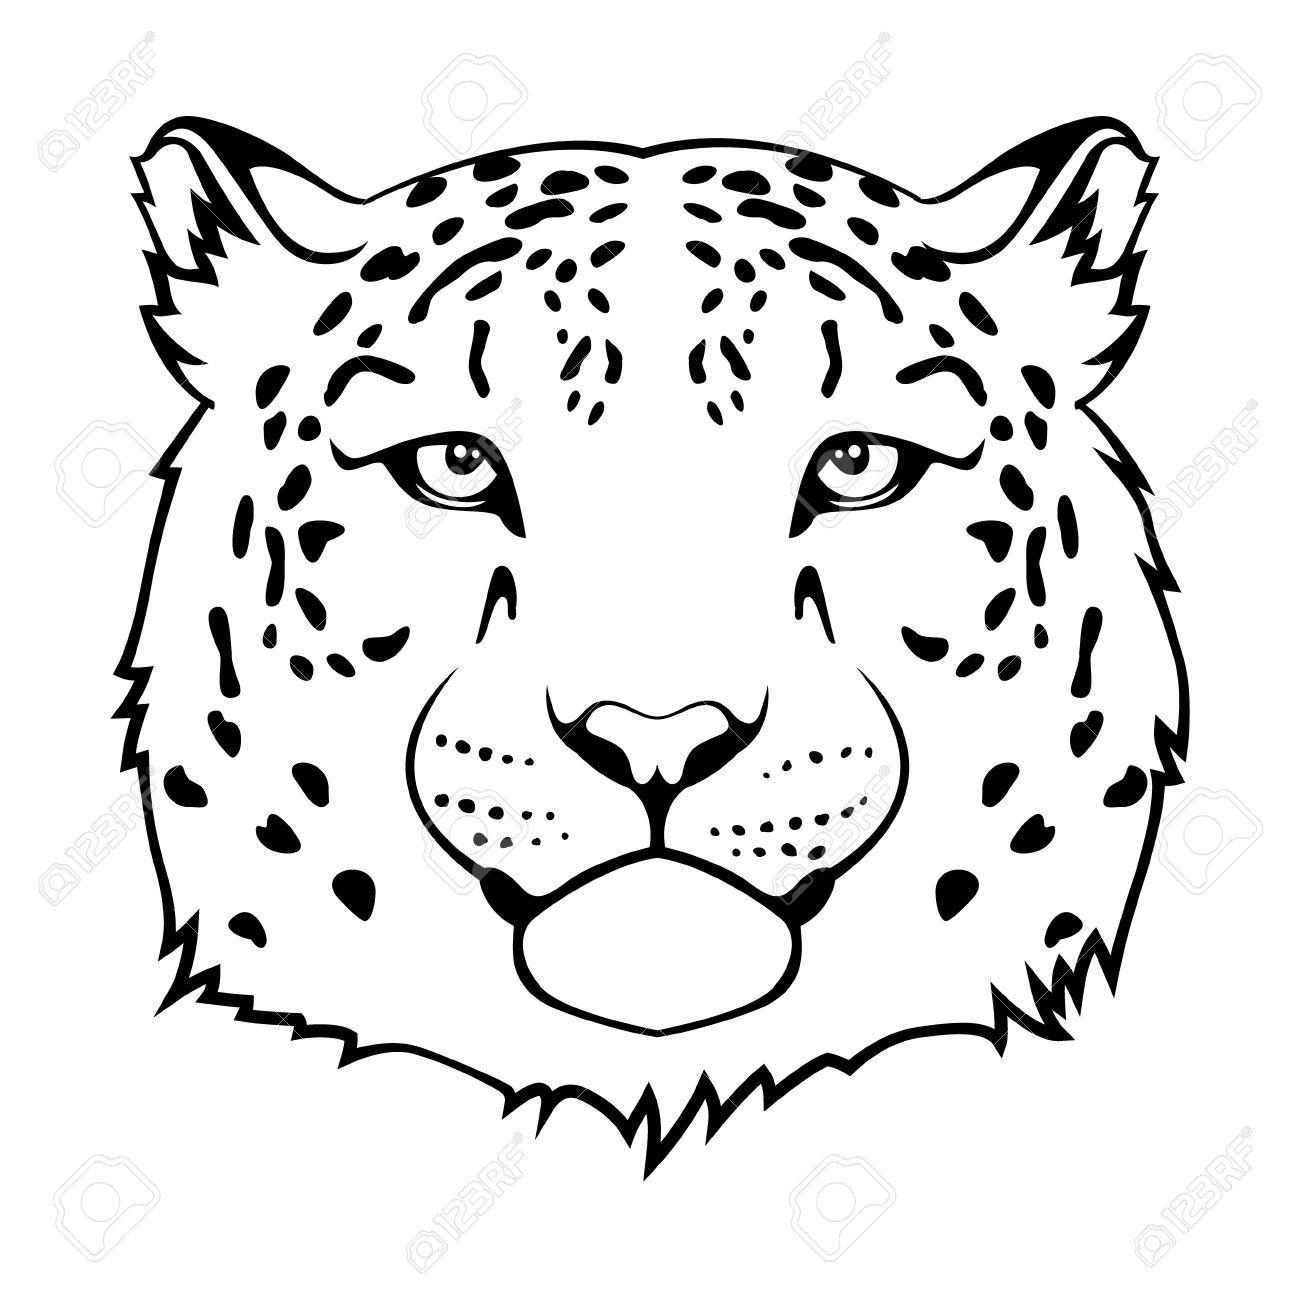 how to draw a snow leopard face how to draw a leopard leopard painting snow leopard a leopard to draw face how snow